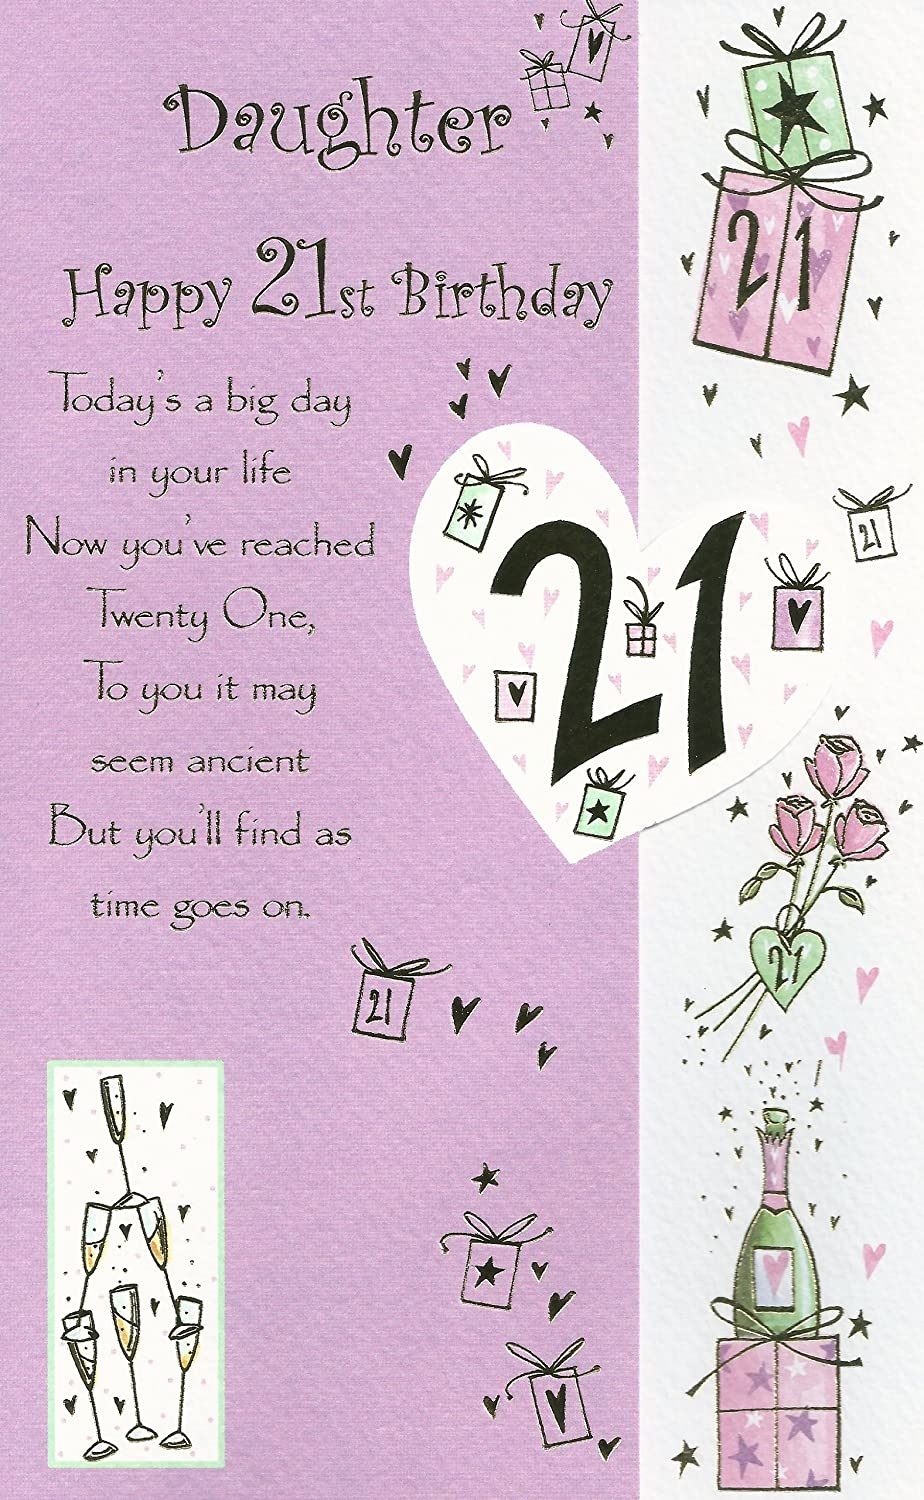 Daughter Happy 21st Birthday Card Amazon Co Uk Kitchen Home